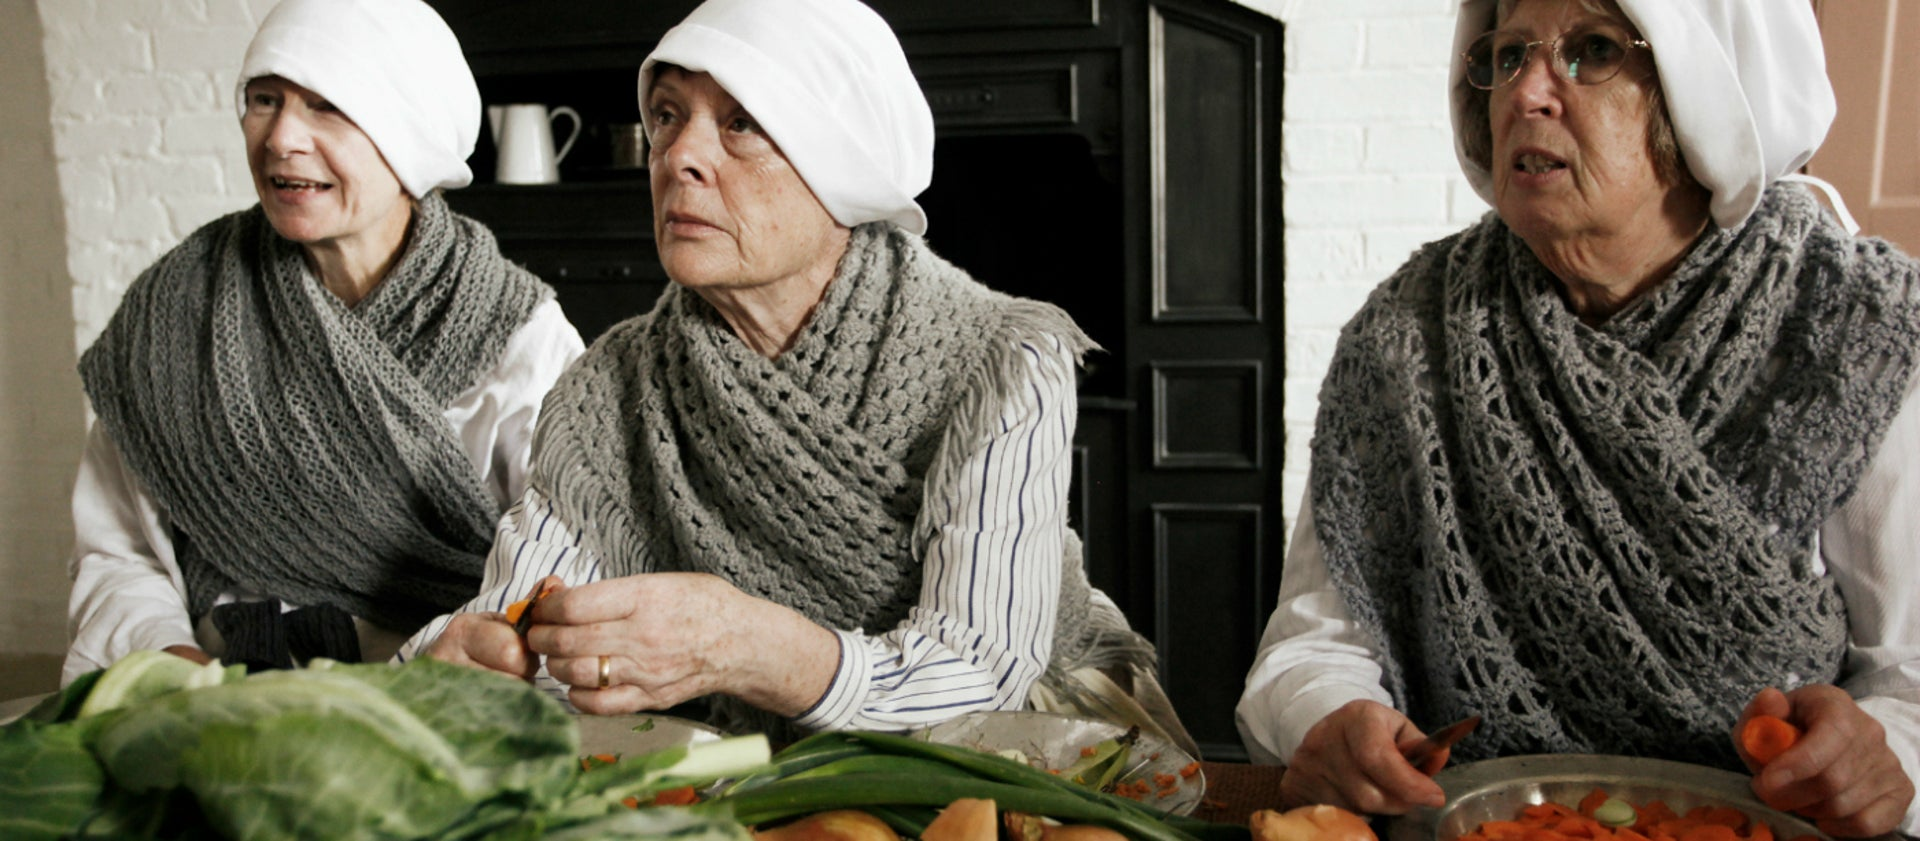 Storytellers from The Workhouse | National Trust